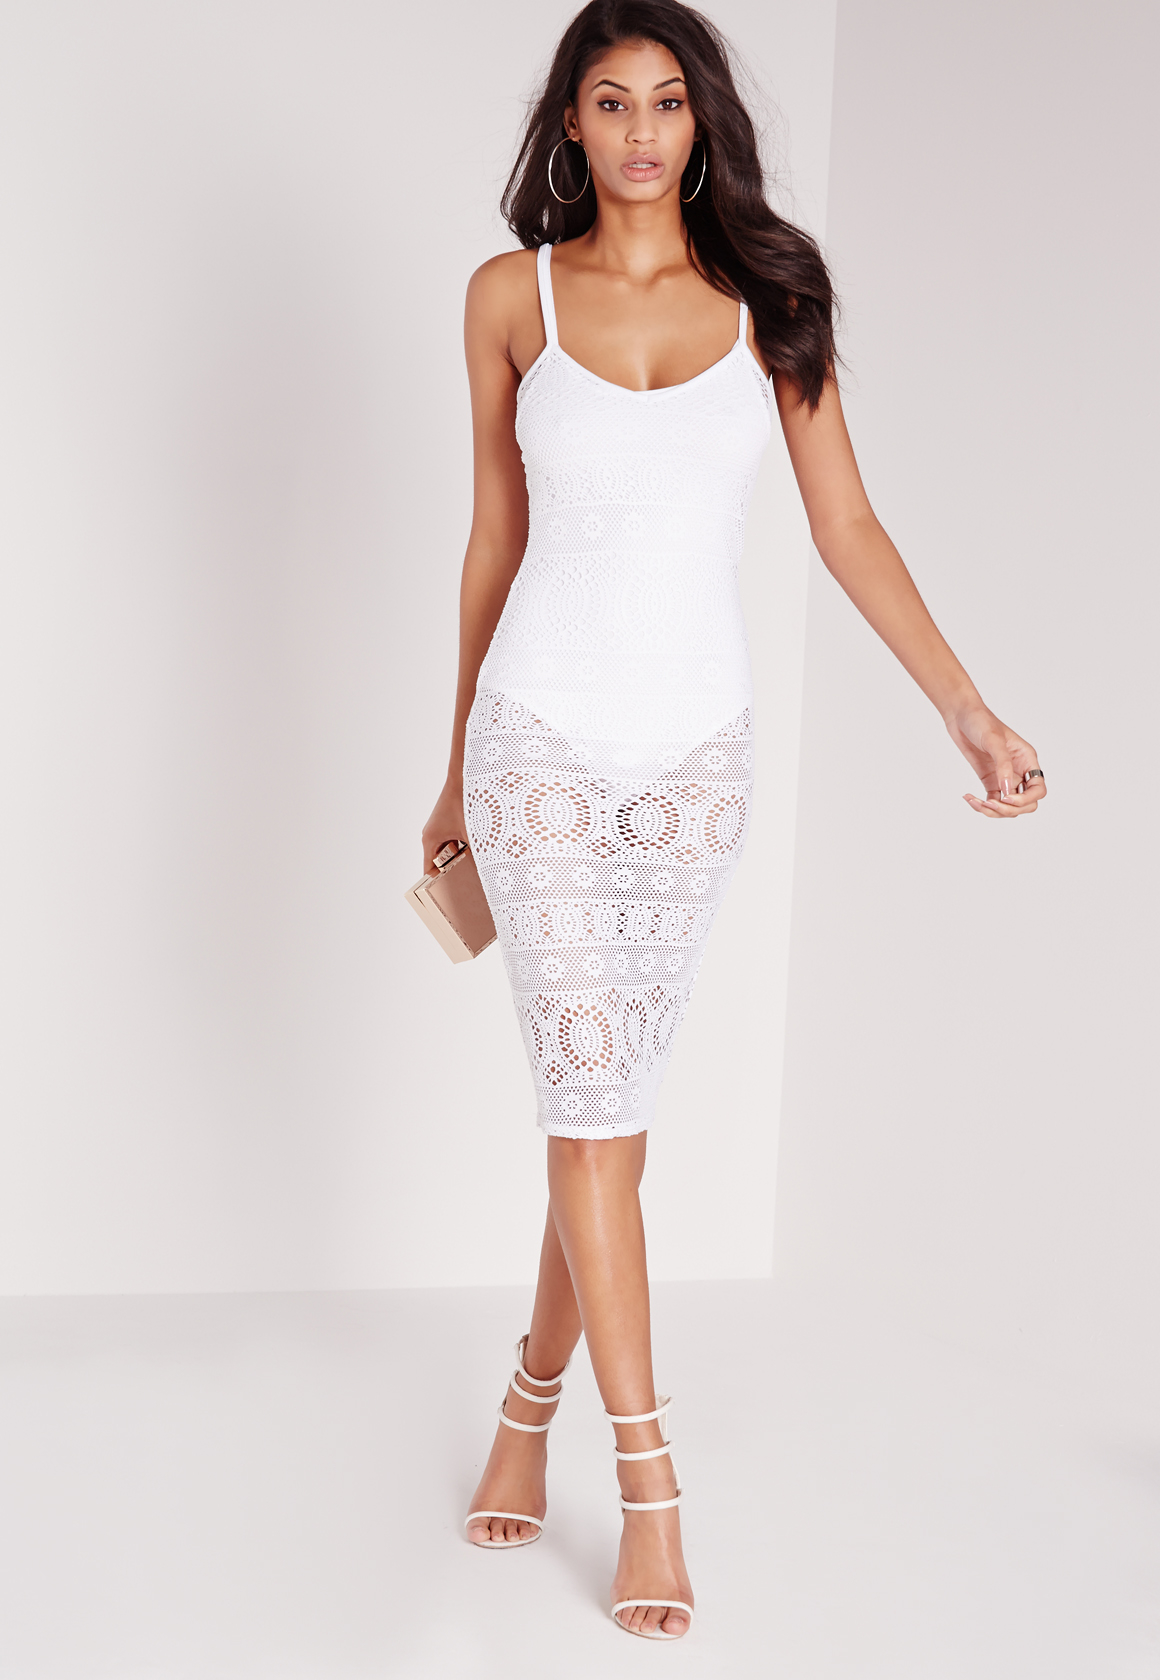 85f49daa3a345 Lyst - Missguided Sheer Lace Cami Midi Dress White in White